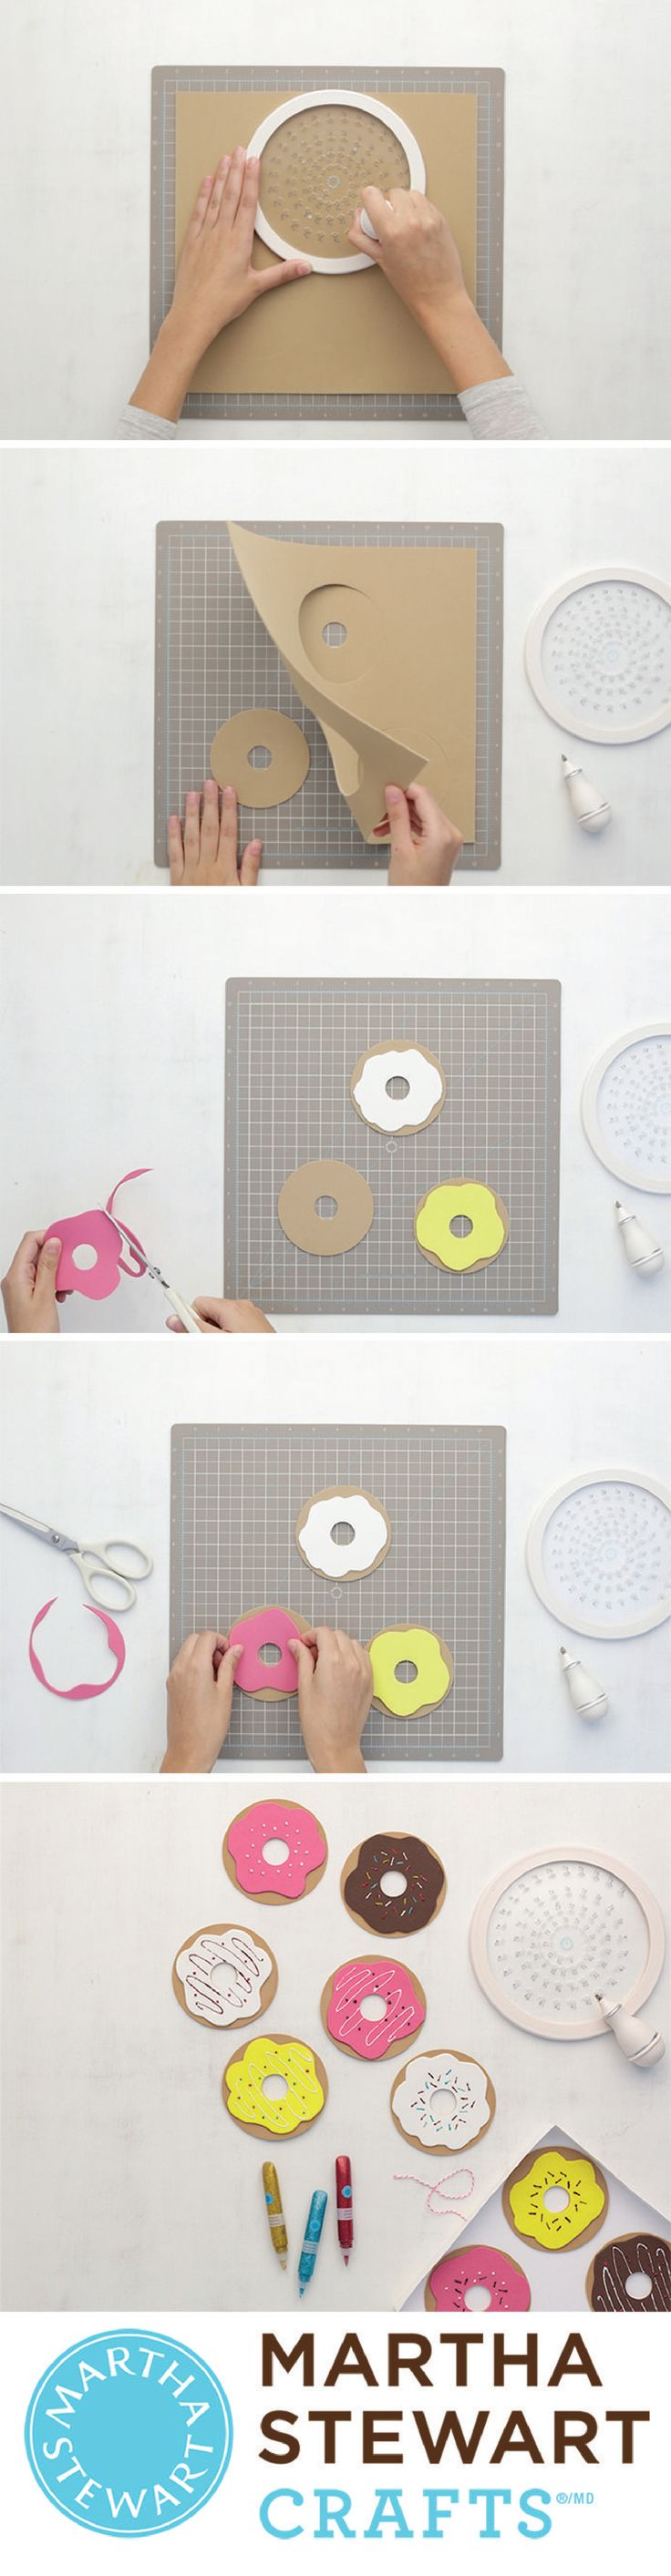 Get your donut fix without the calories using the circle cutter from Martha Stewart Crafts